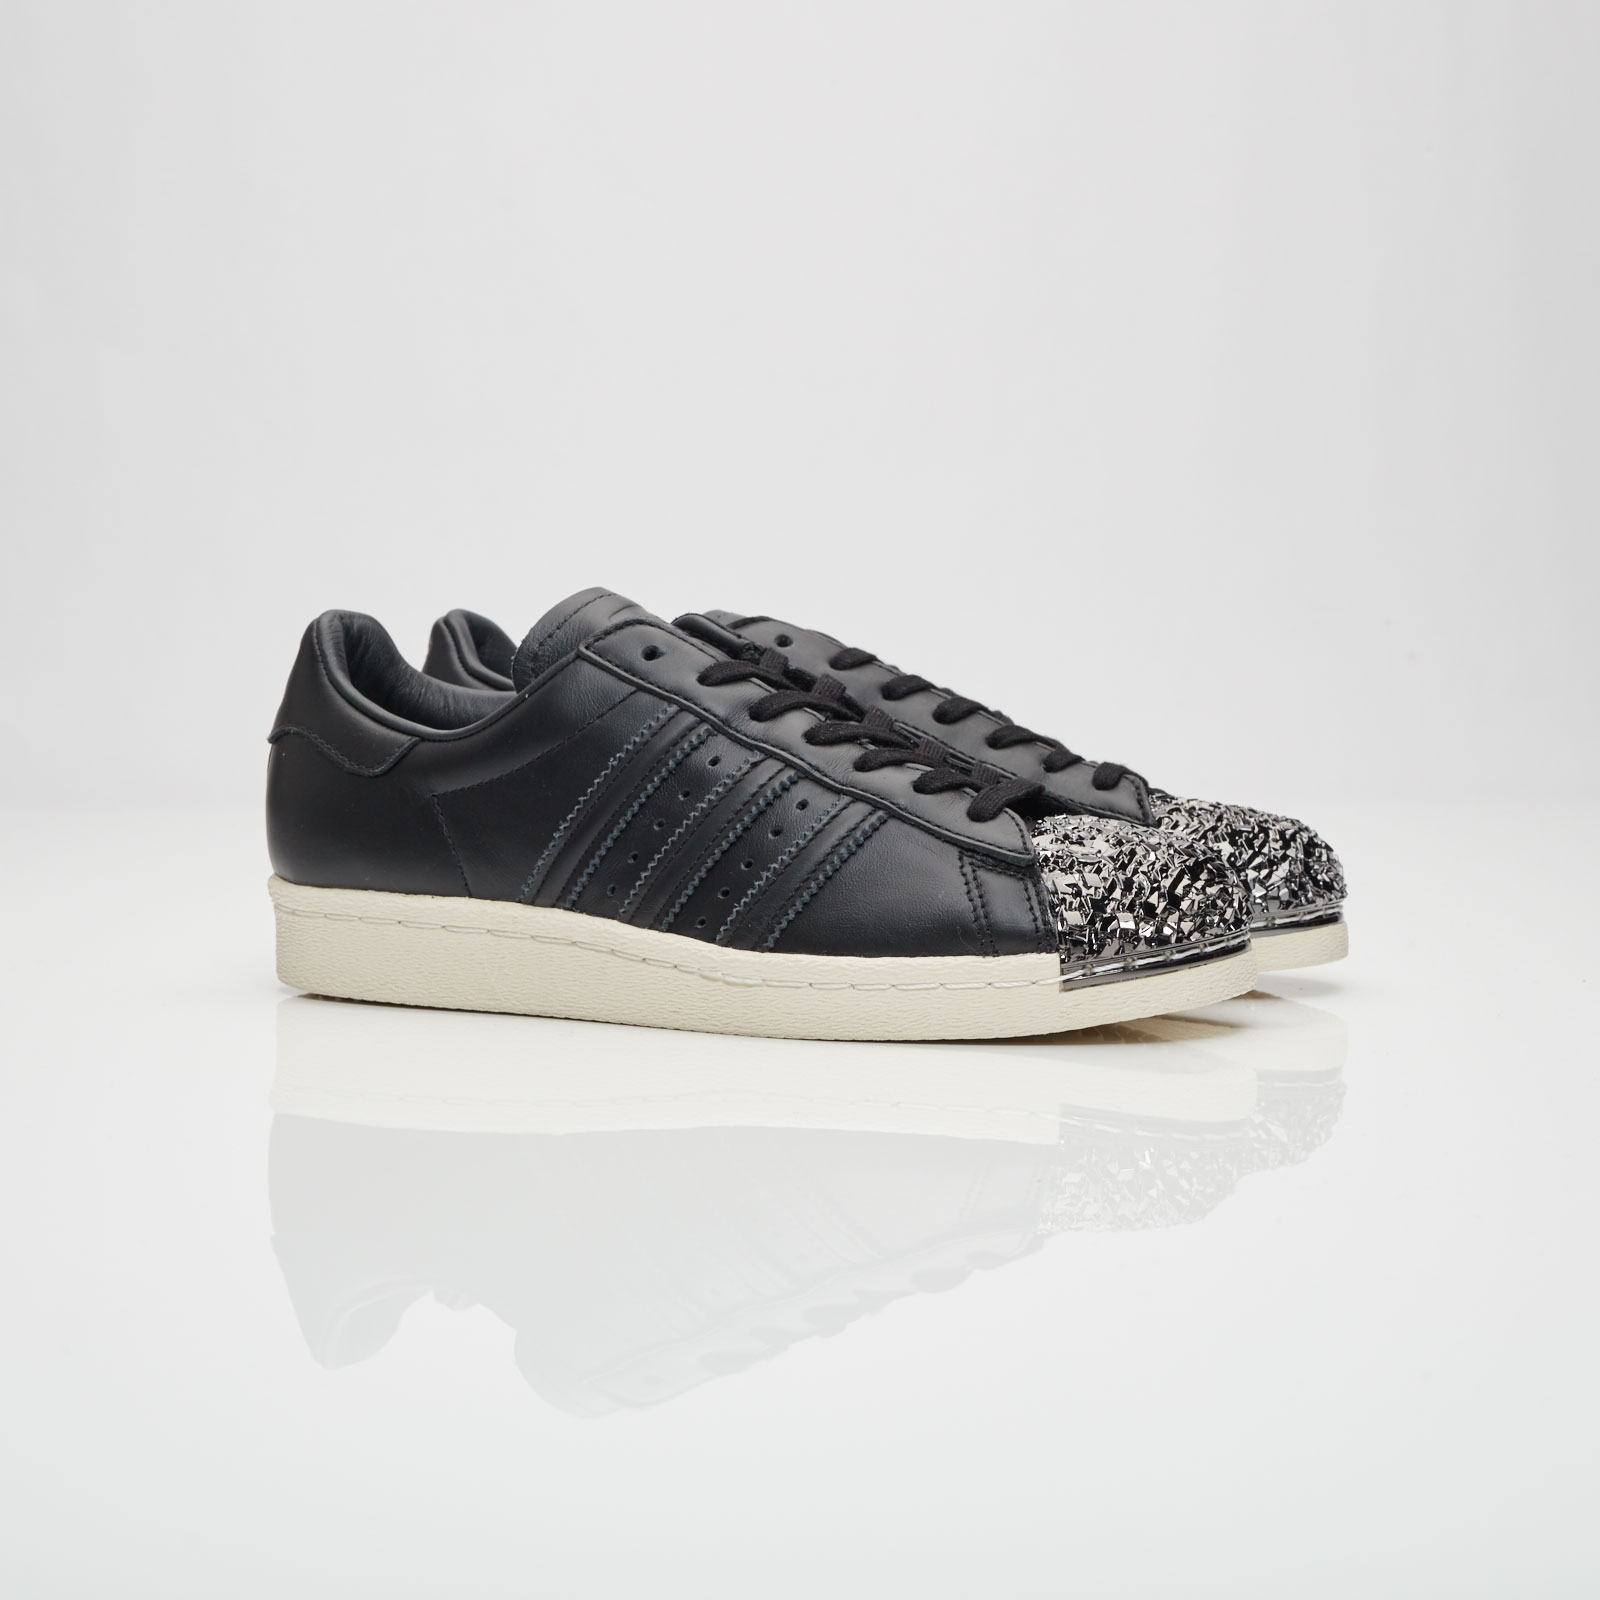 Adidas Superstar 80s 3D MT W bb2033 sneakersnstuff Sneakers